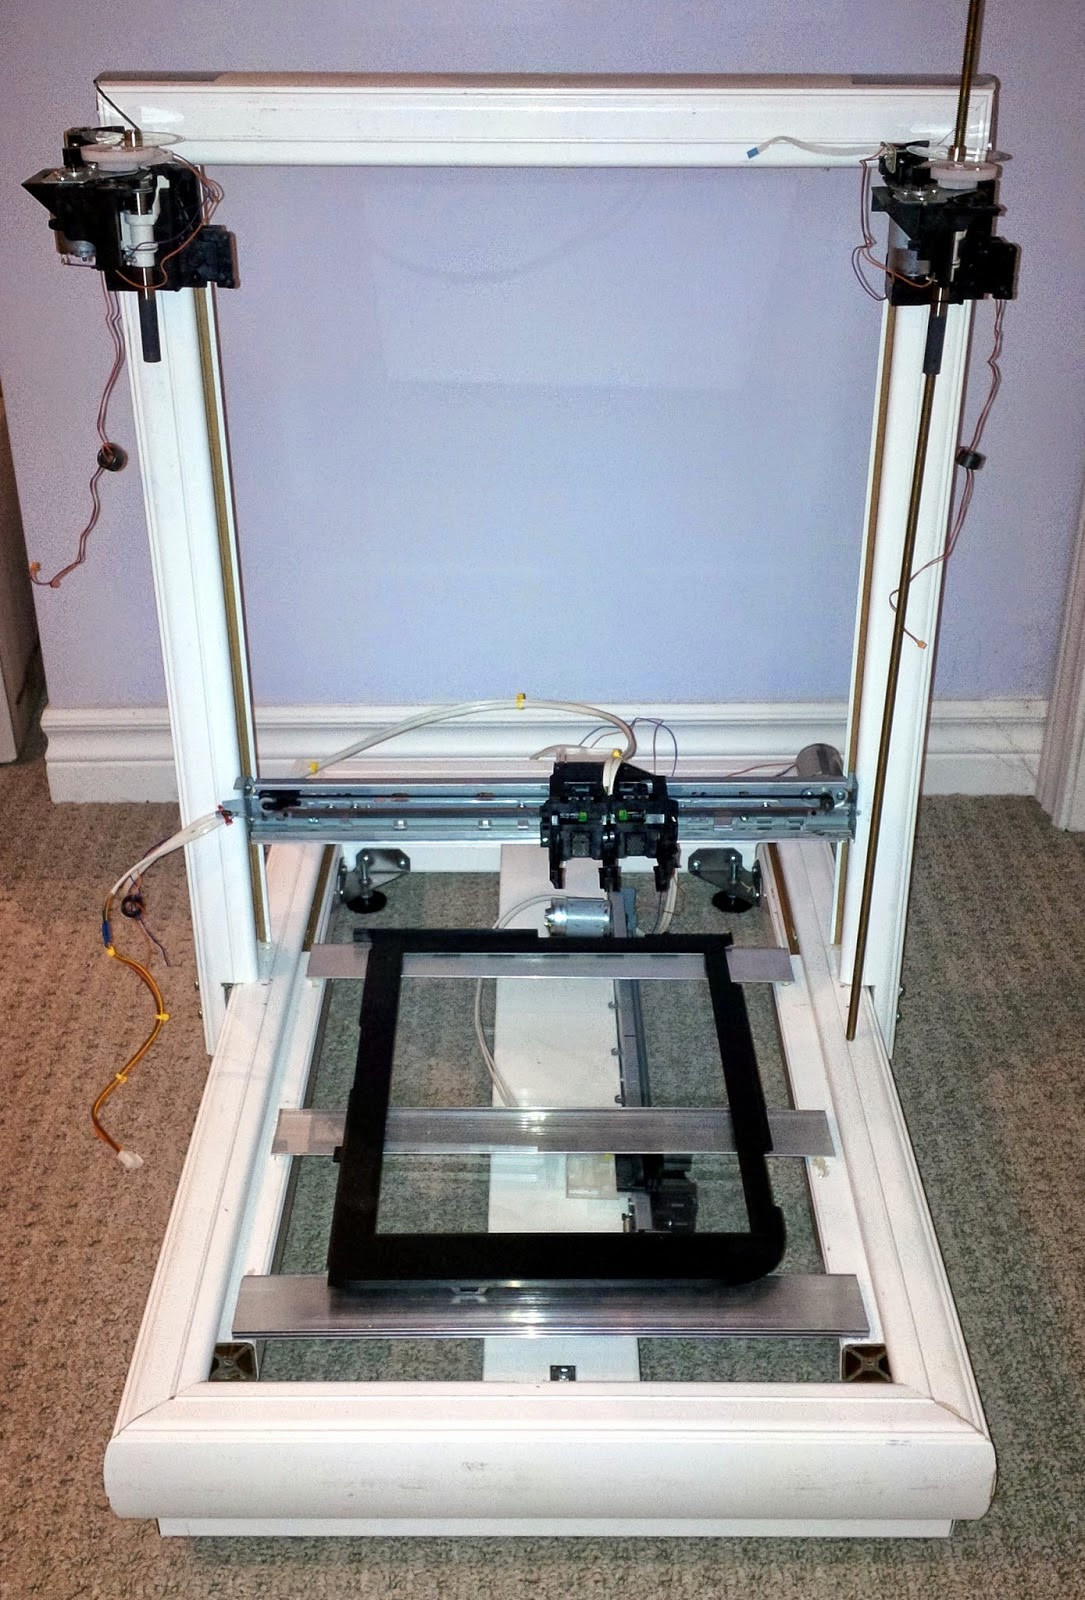 Best ideas about DIY 3D Printer . Save or Pin DIY 3D Printing RepScrap DIY 3d printer from salvaged Now.